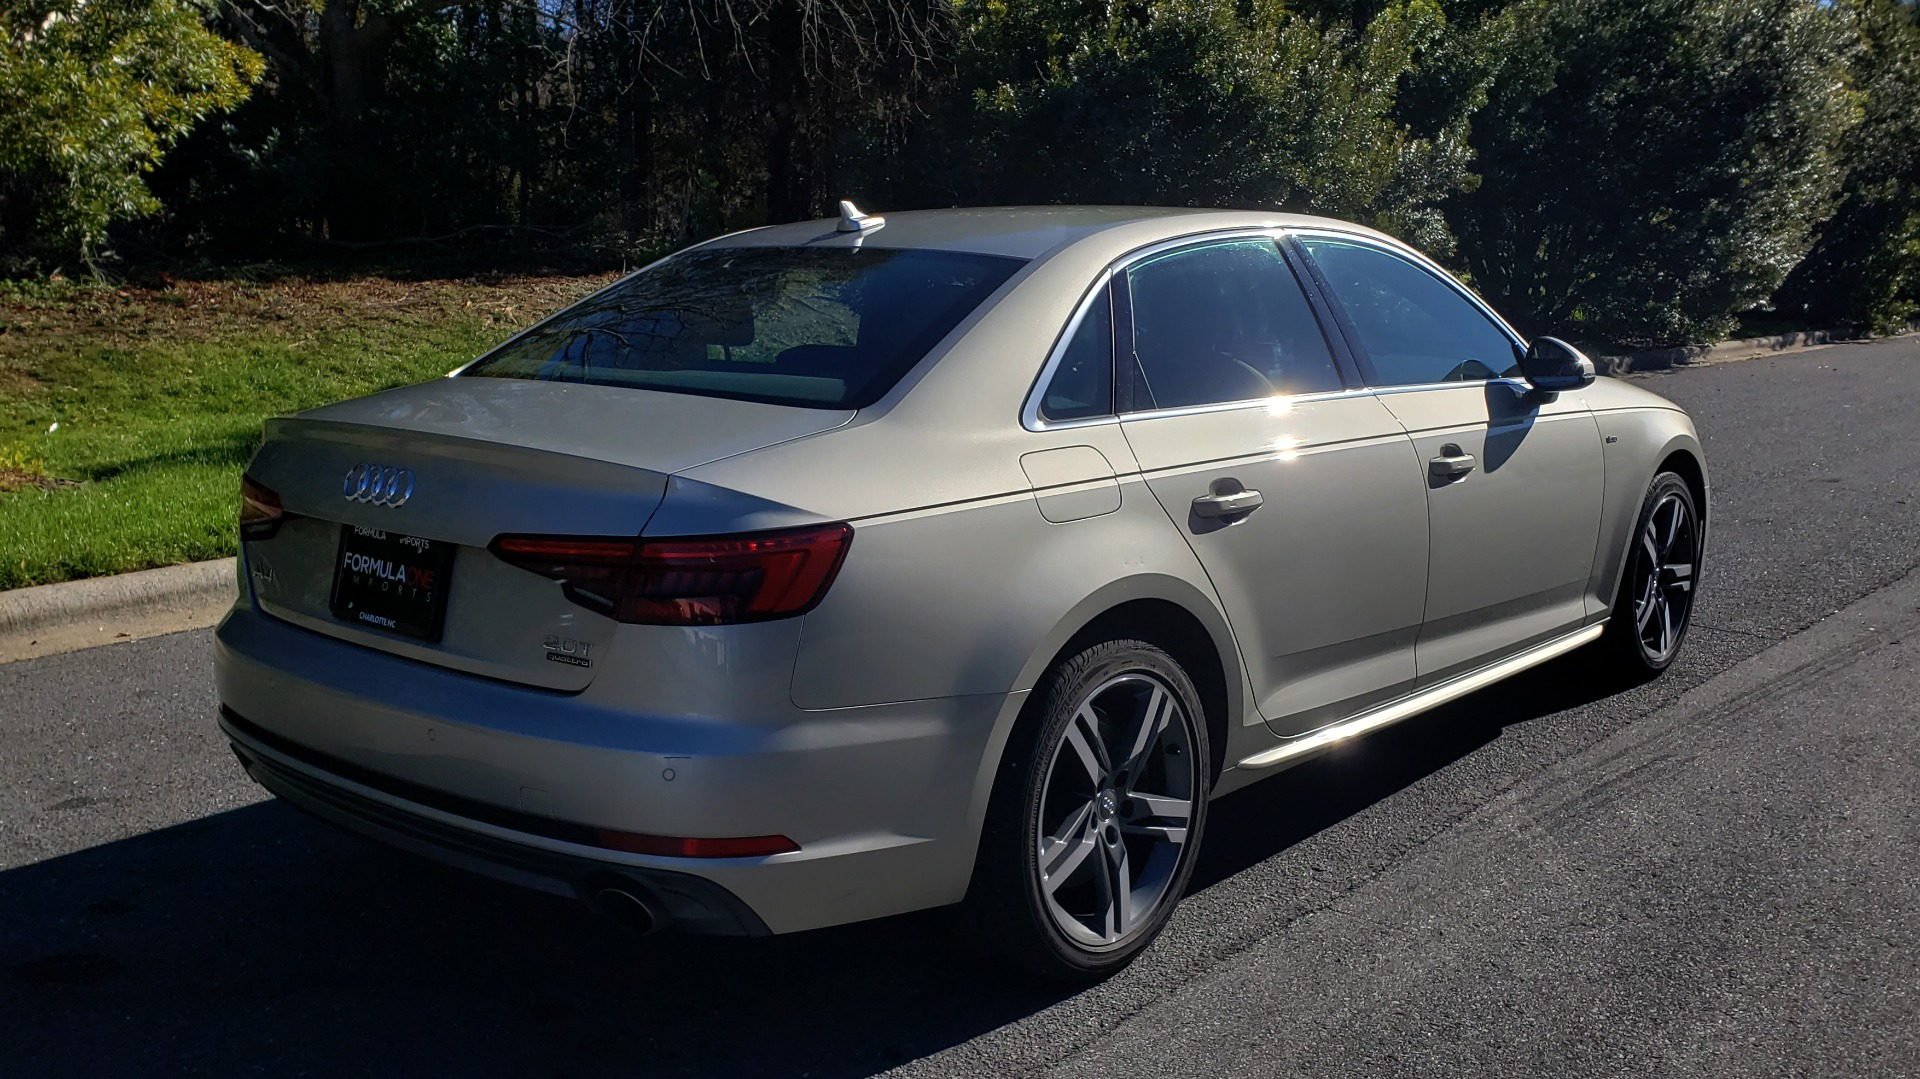 Used 2017 Audi A4 PREMIUM PLUS / TECH PKG / B&O SND / S-LINE / NAV / REARVIEW for sale $24,995 at Formula Imports in Charlotte NC 28227 5